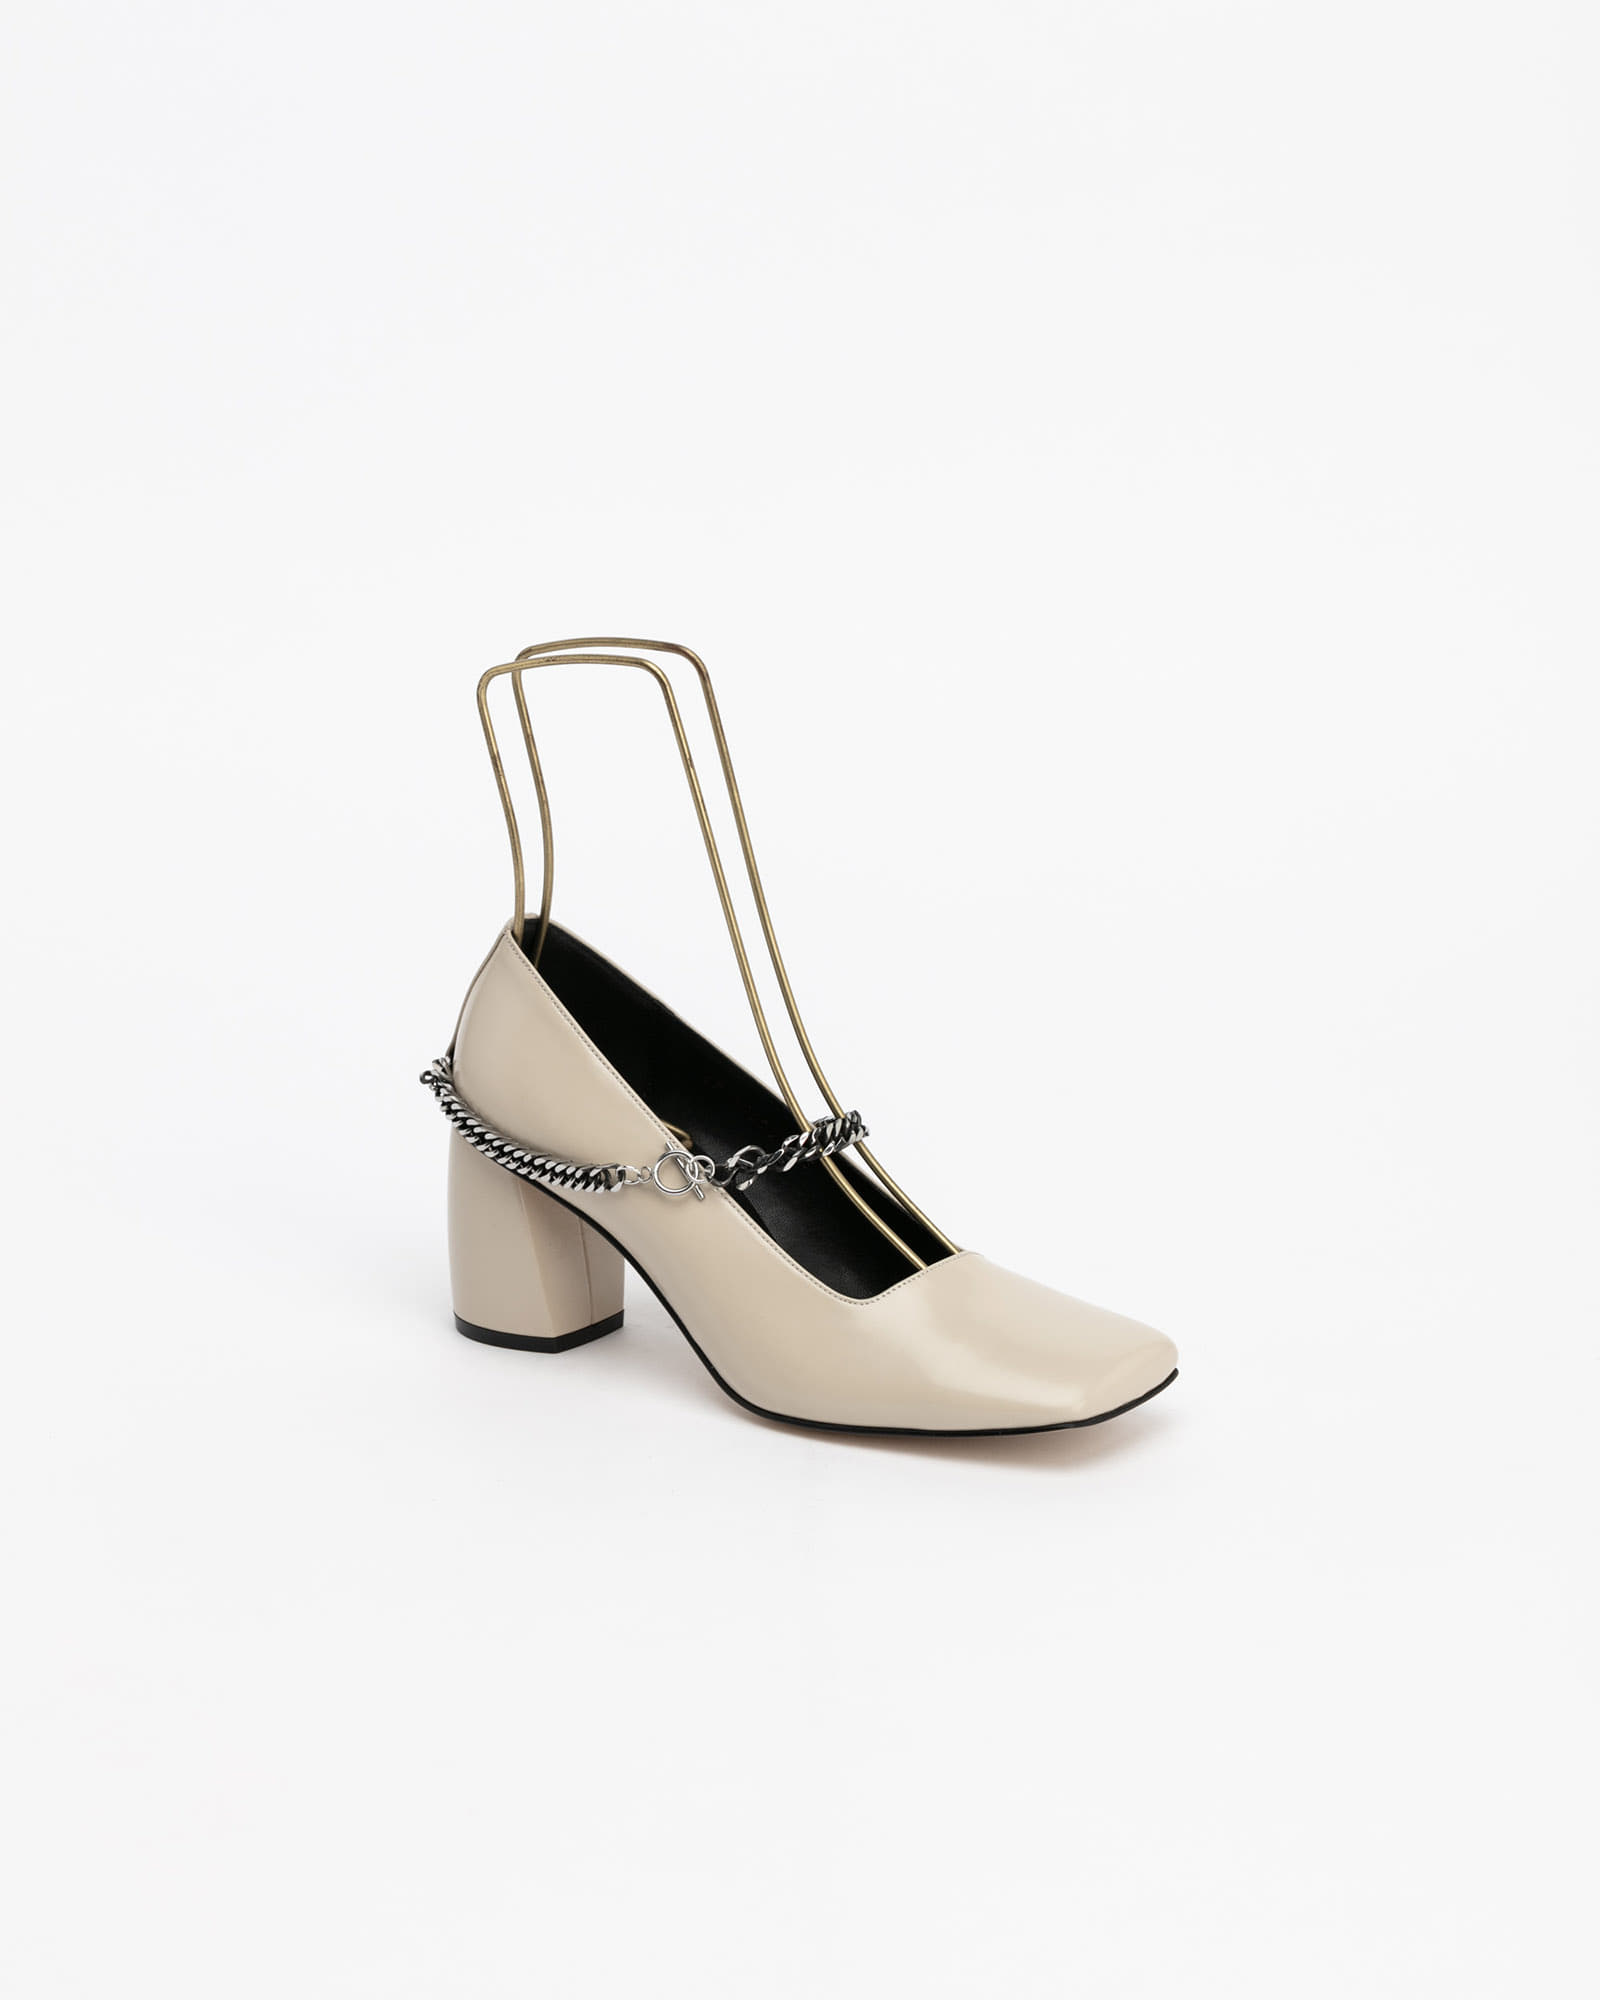 Sachsen Chained Pumps in Ivory